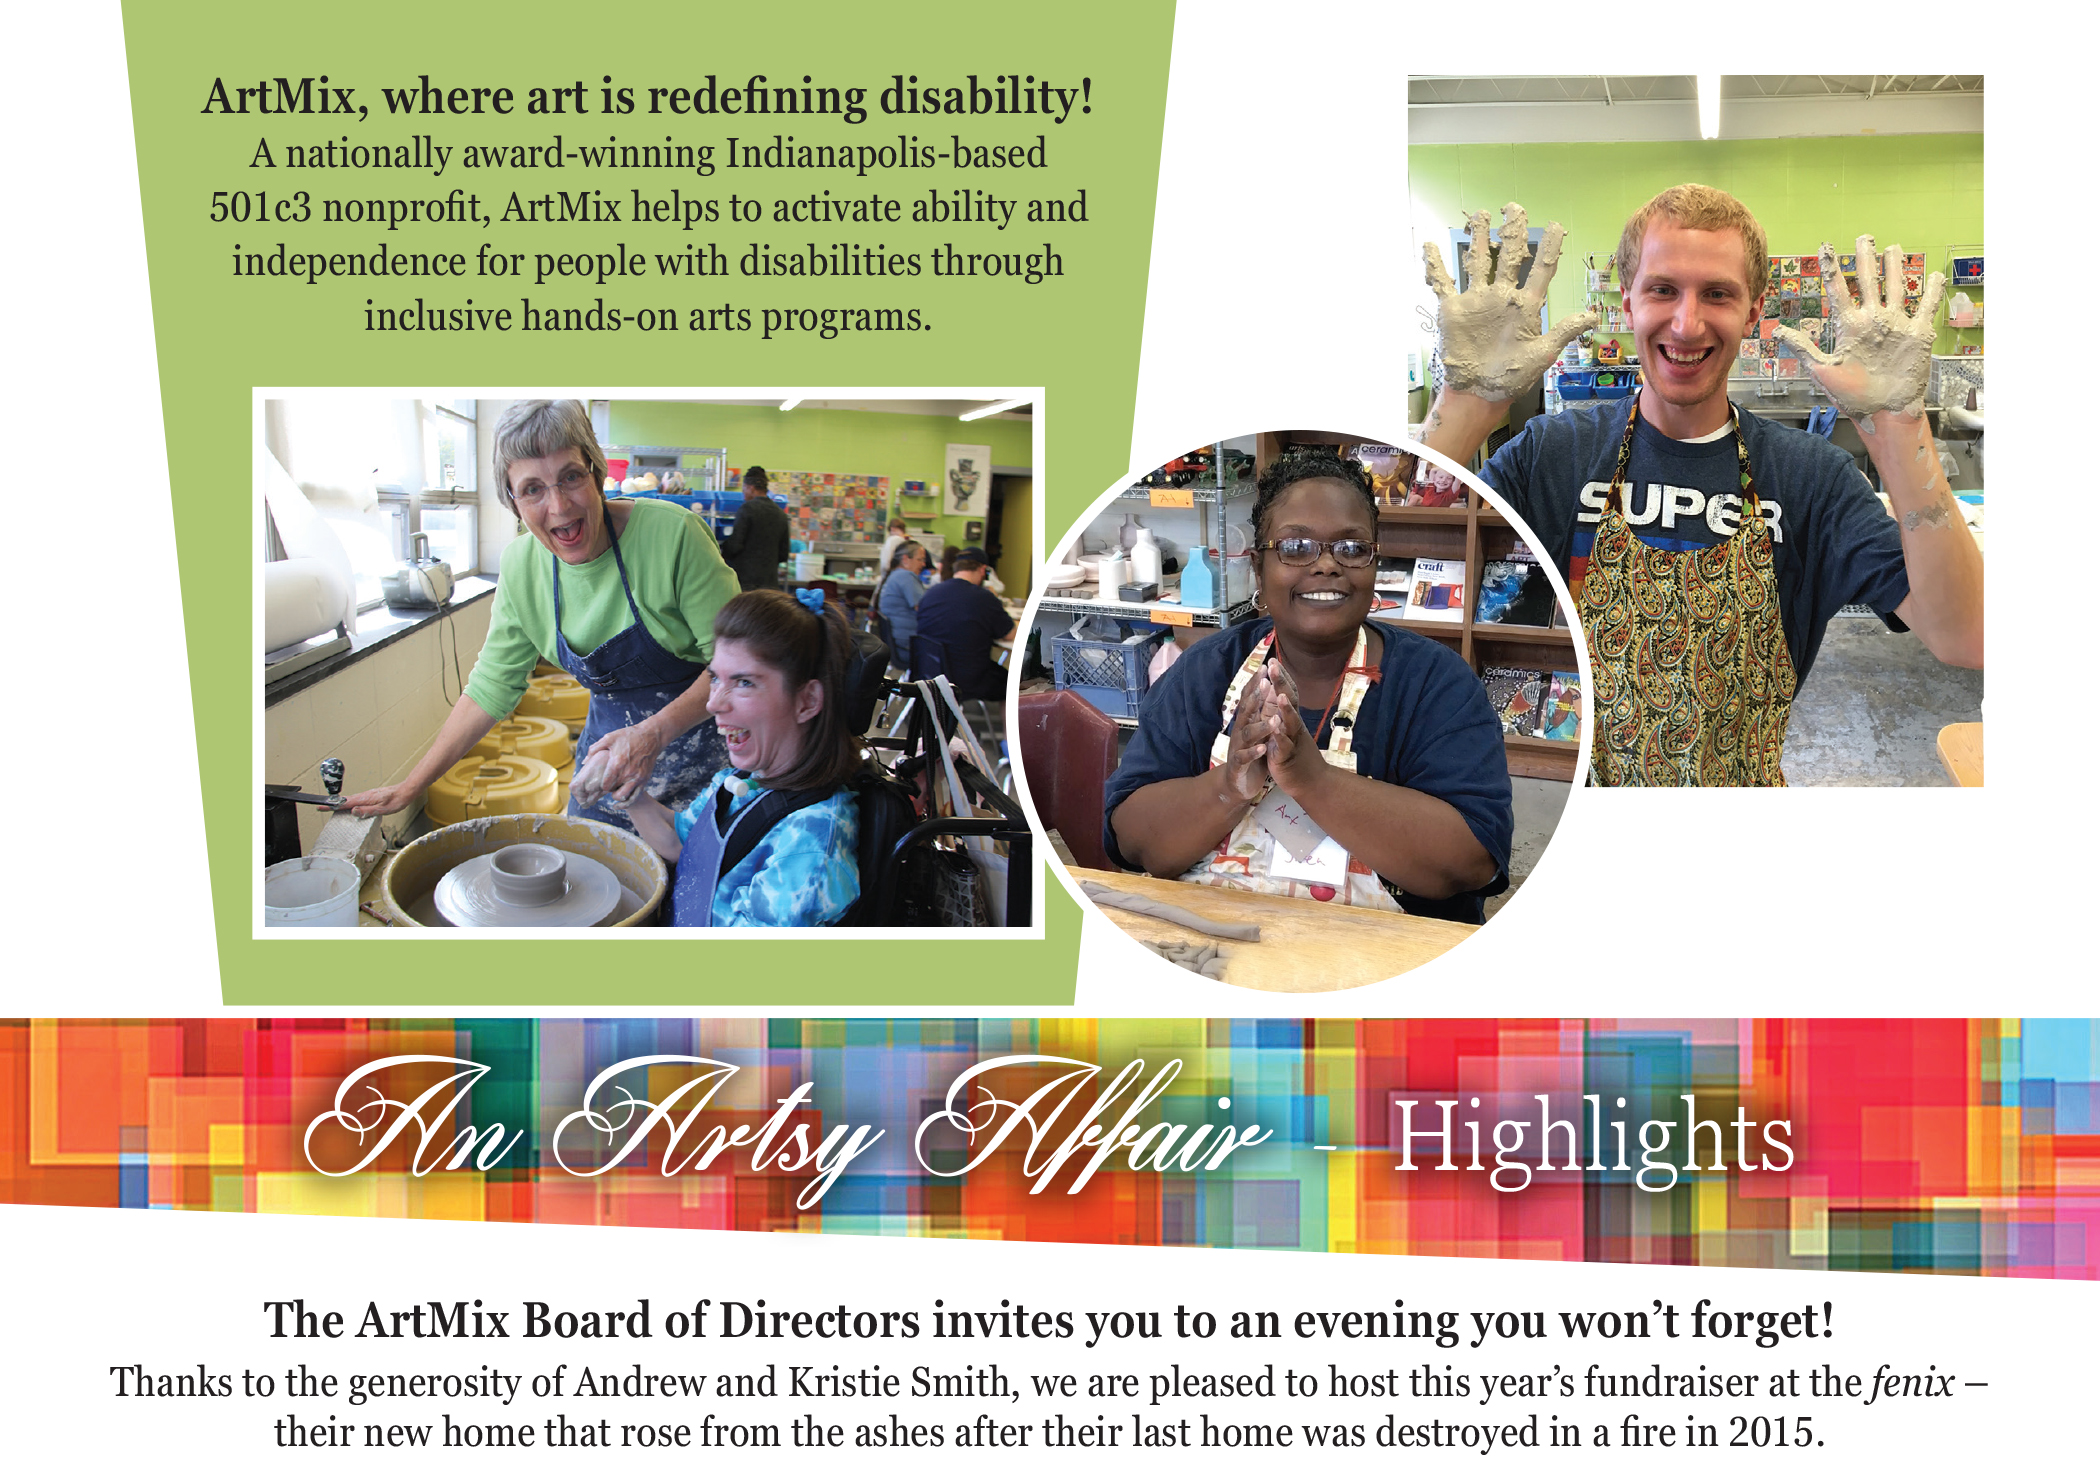 ArtMix, where art is redefining disability! A nationally award-winning Indianapolis-based 501c3 nonprofit, ArtMix helps to activate ability and independence for people with disabilities through inclusive hands-on arts programs. An Artsy Affair - Highlight